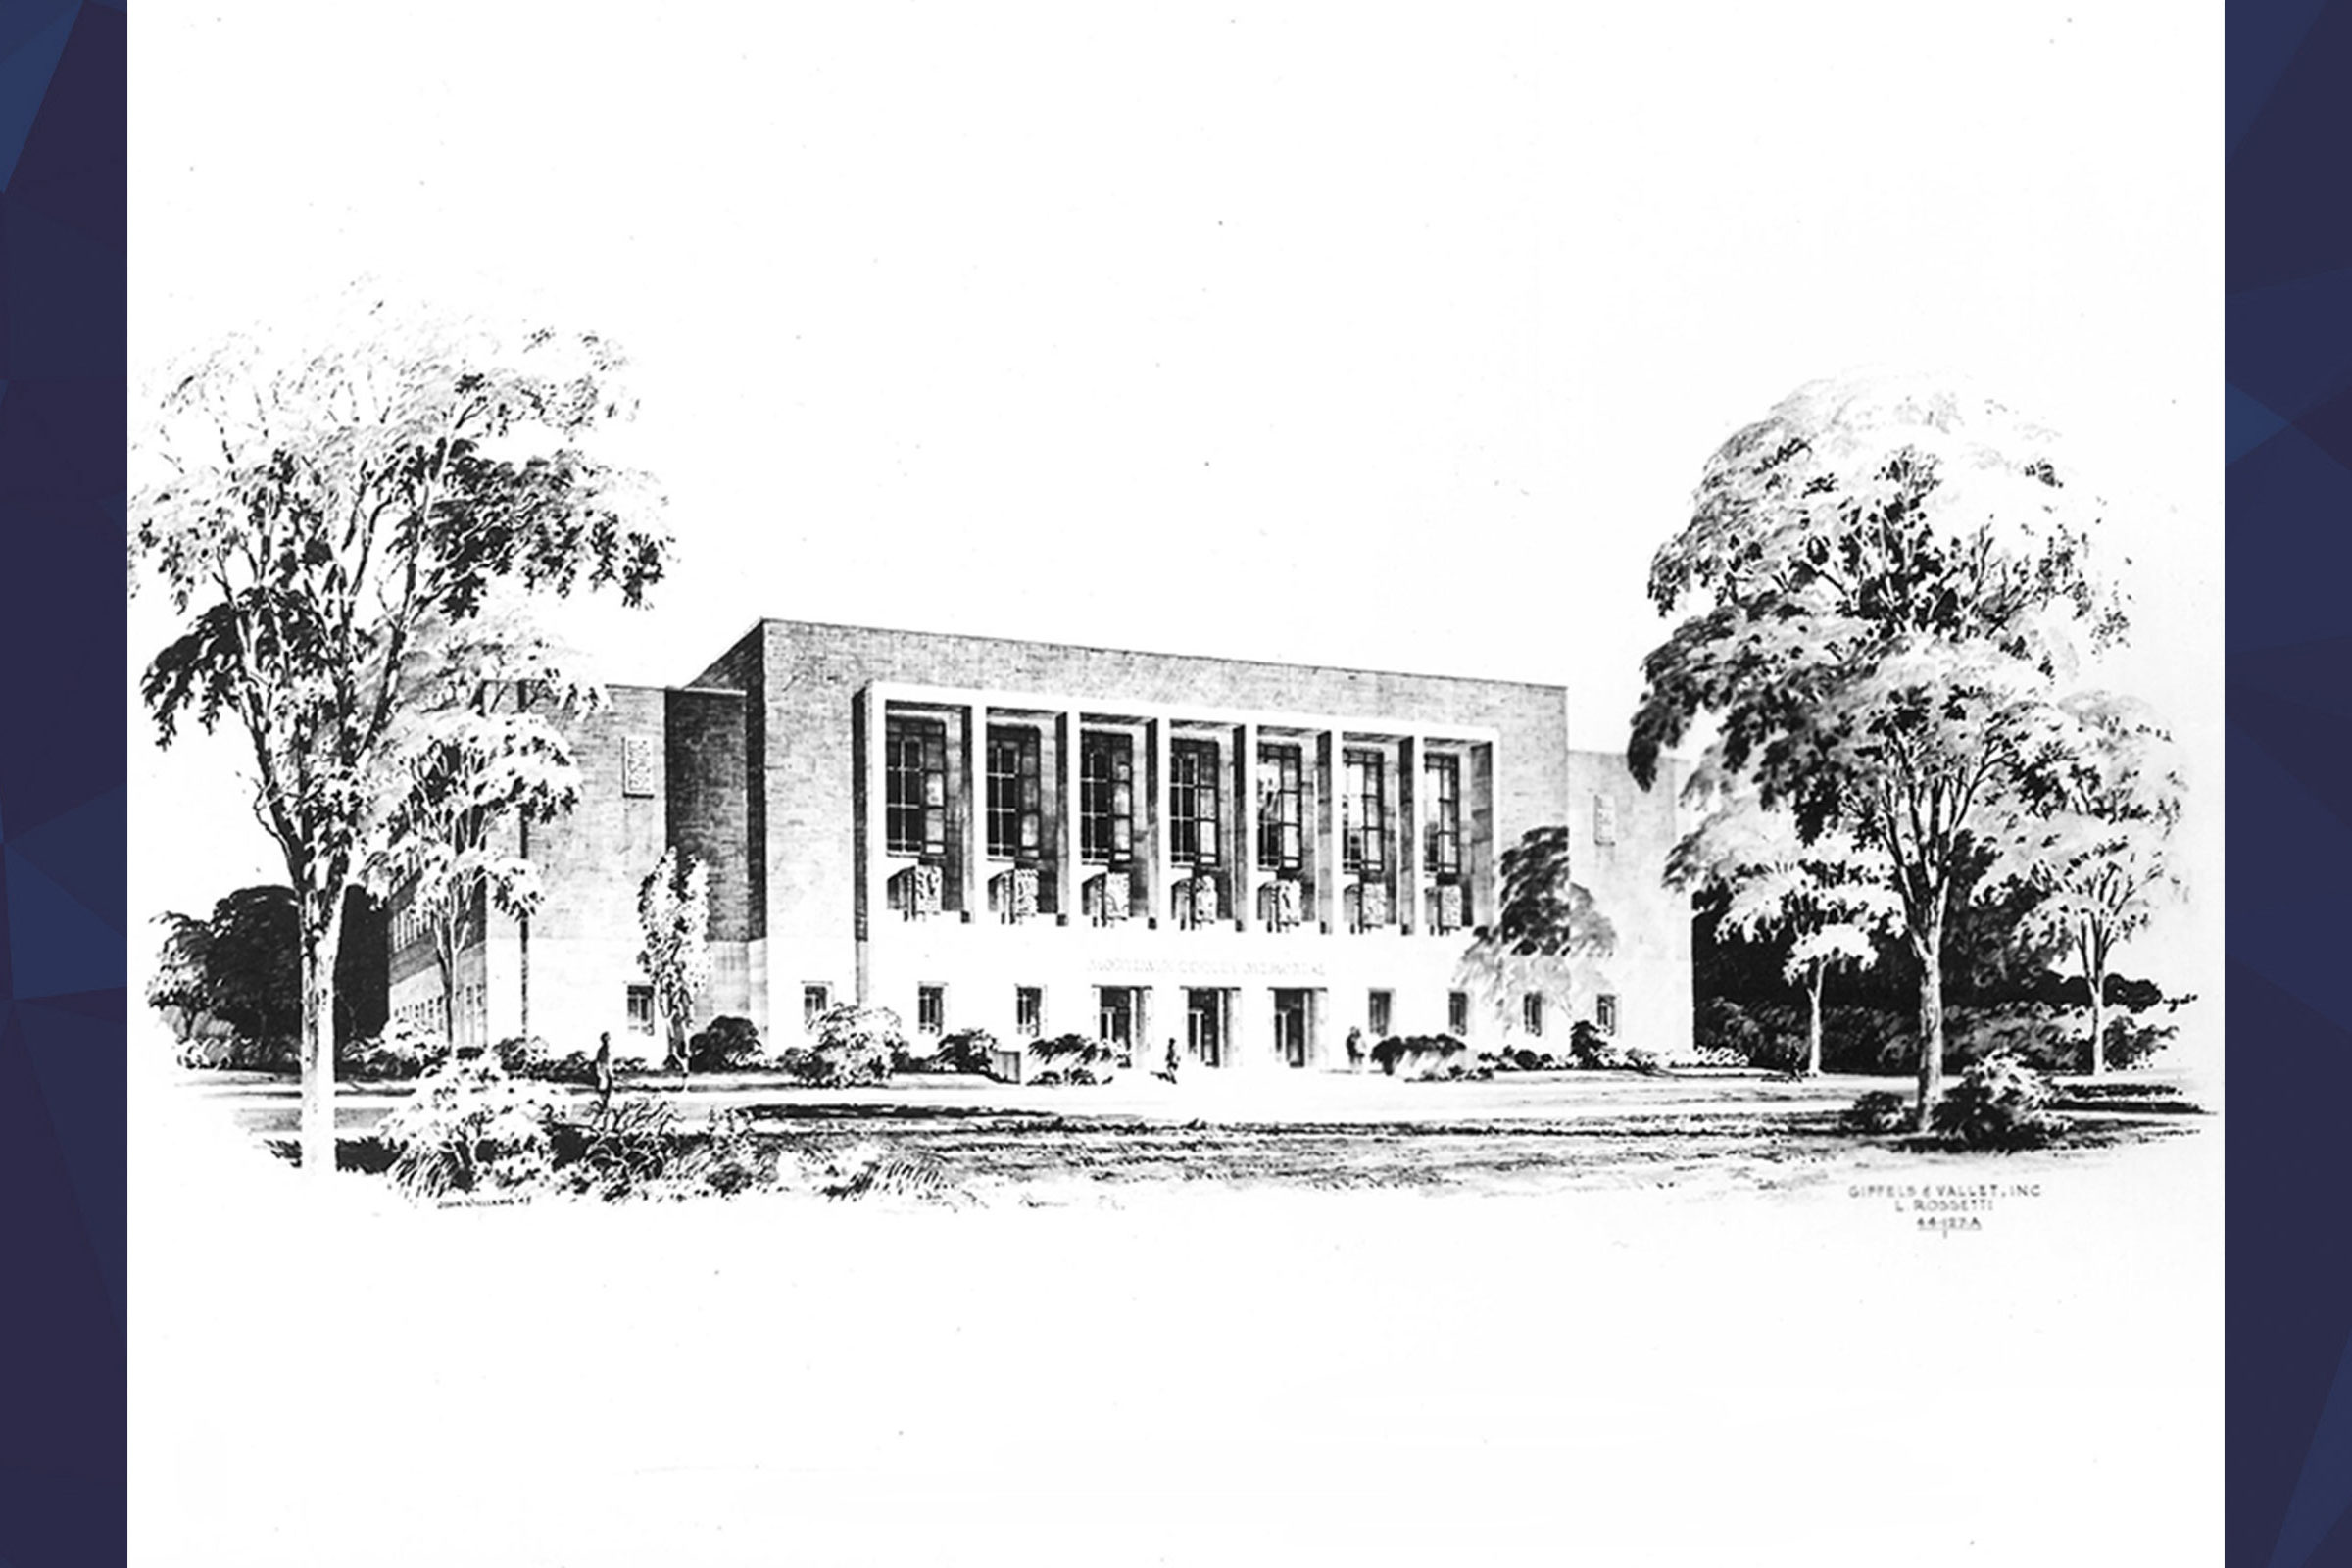 drawing of the Cooley Memorial Building